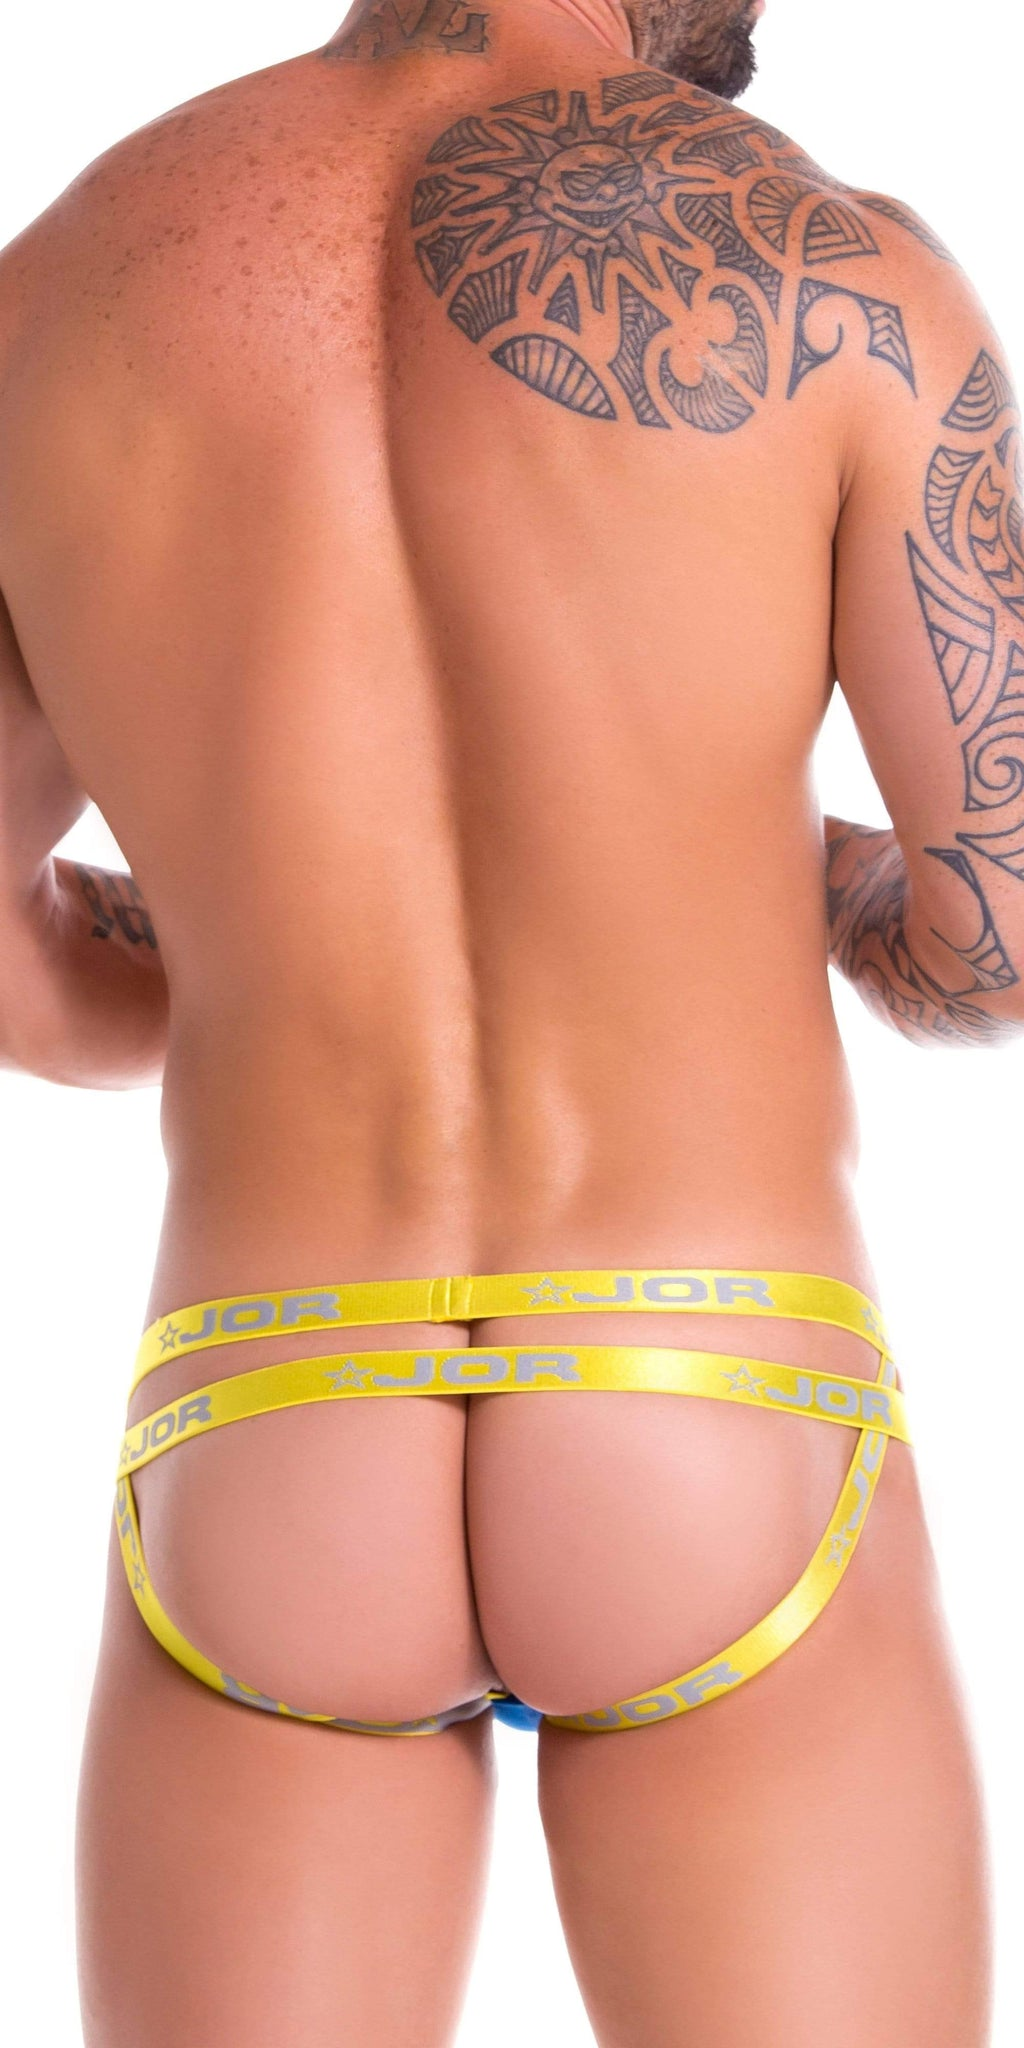 JOR Power Jockstrap In Royal